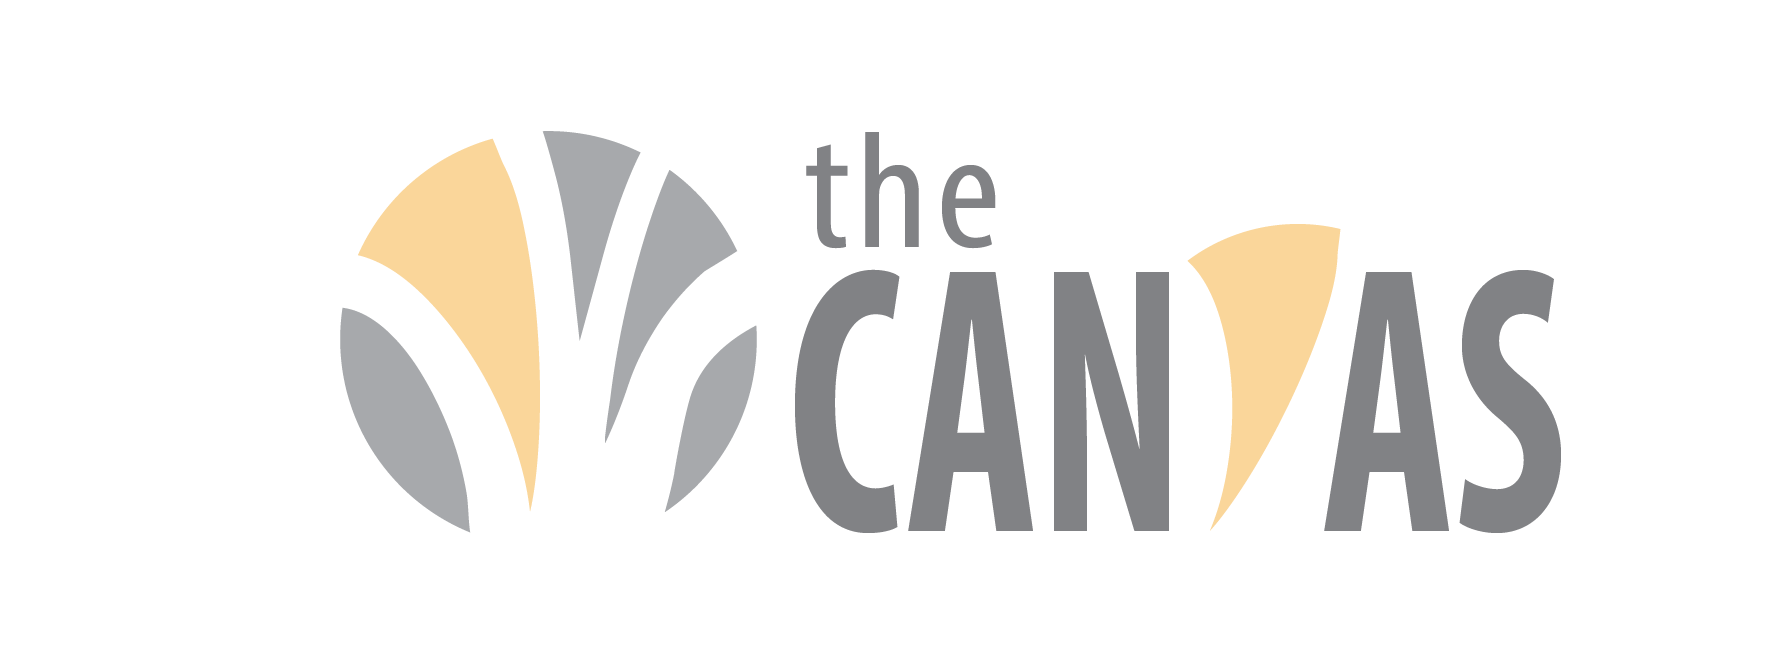 The Canvas Logo_Final1.png